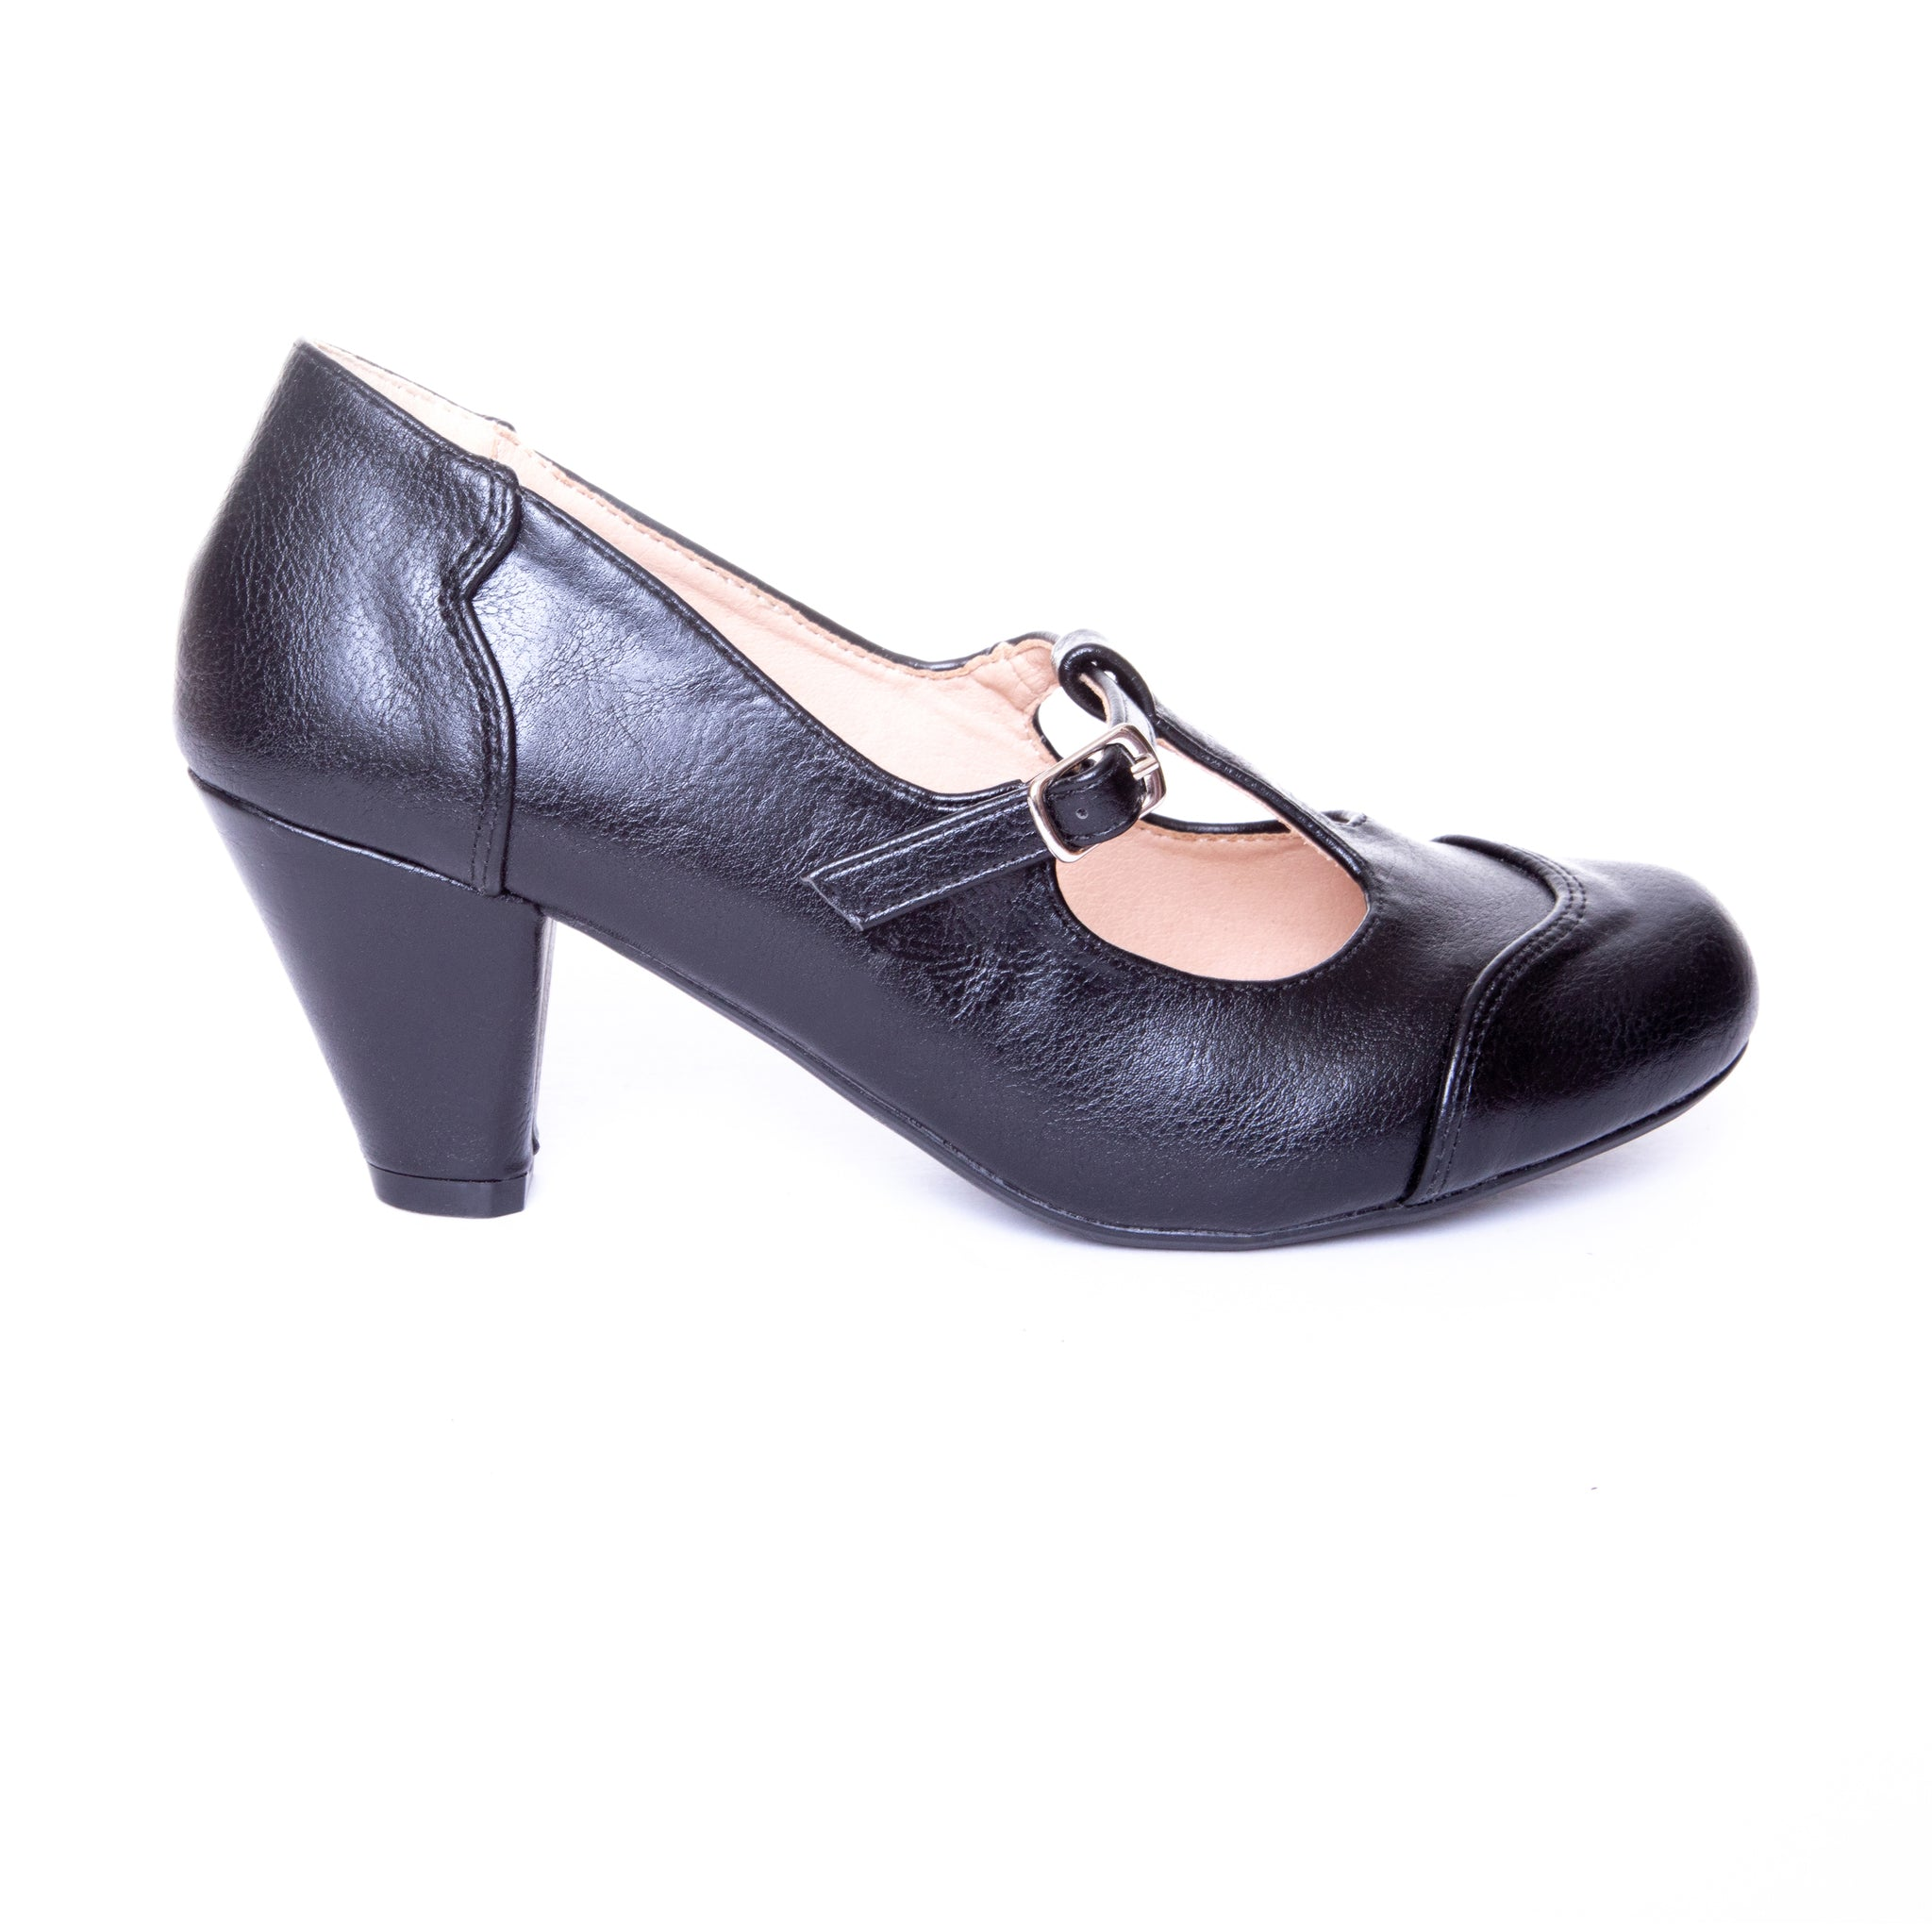 Alexa by Dolce Nome | Mary Jane T-Strap Pumps in Black (side view)